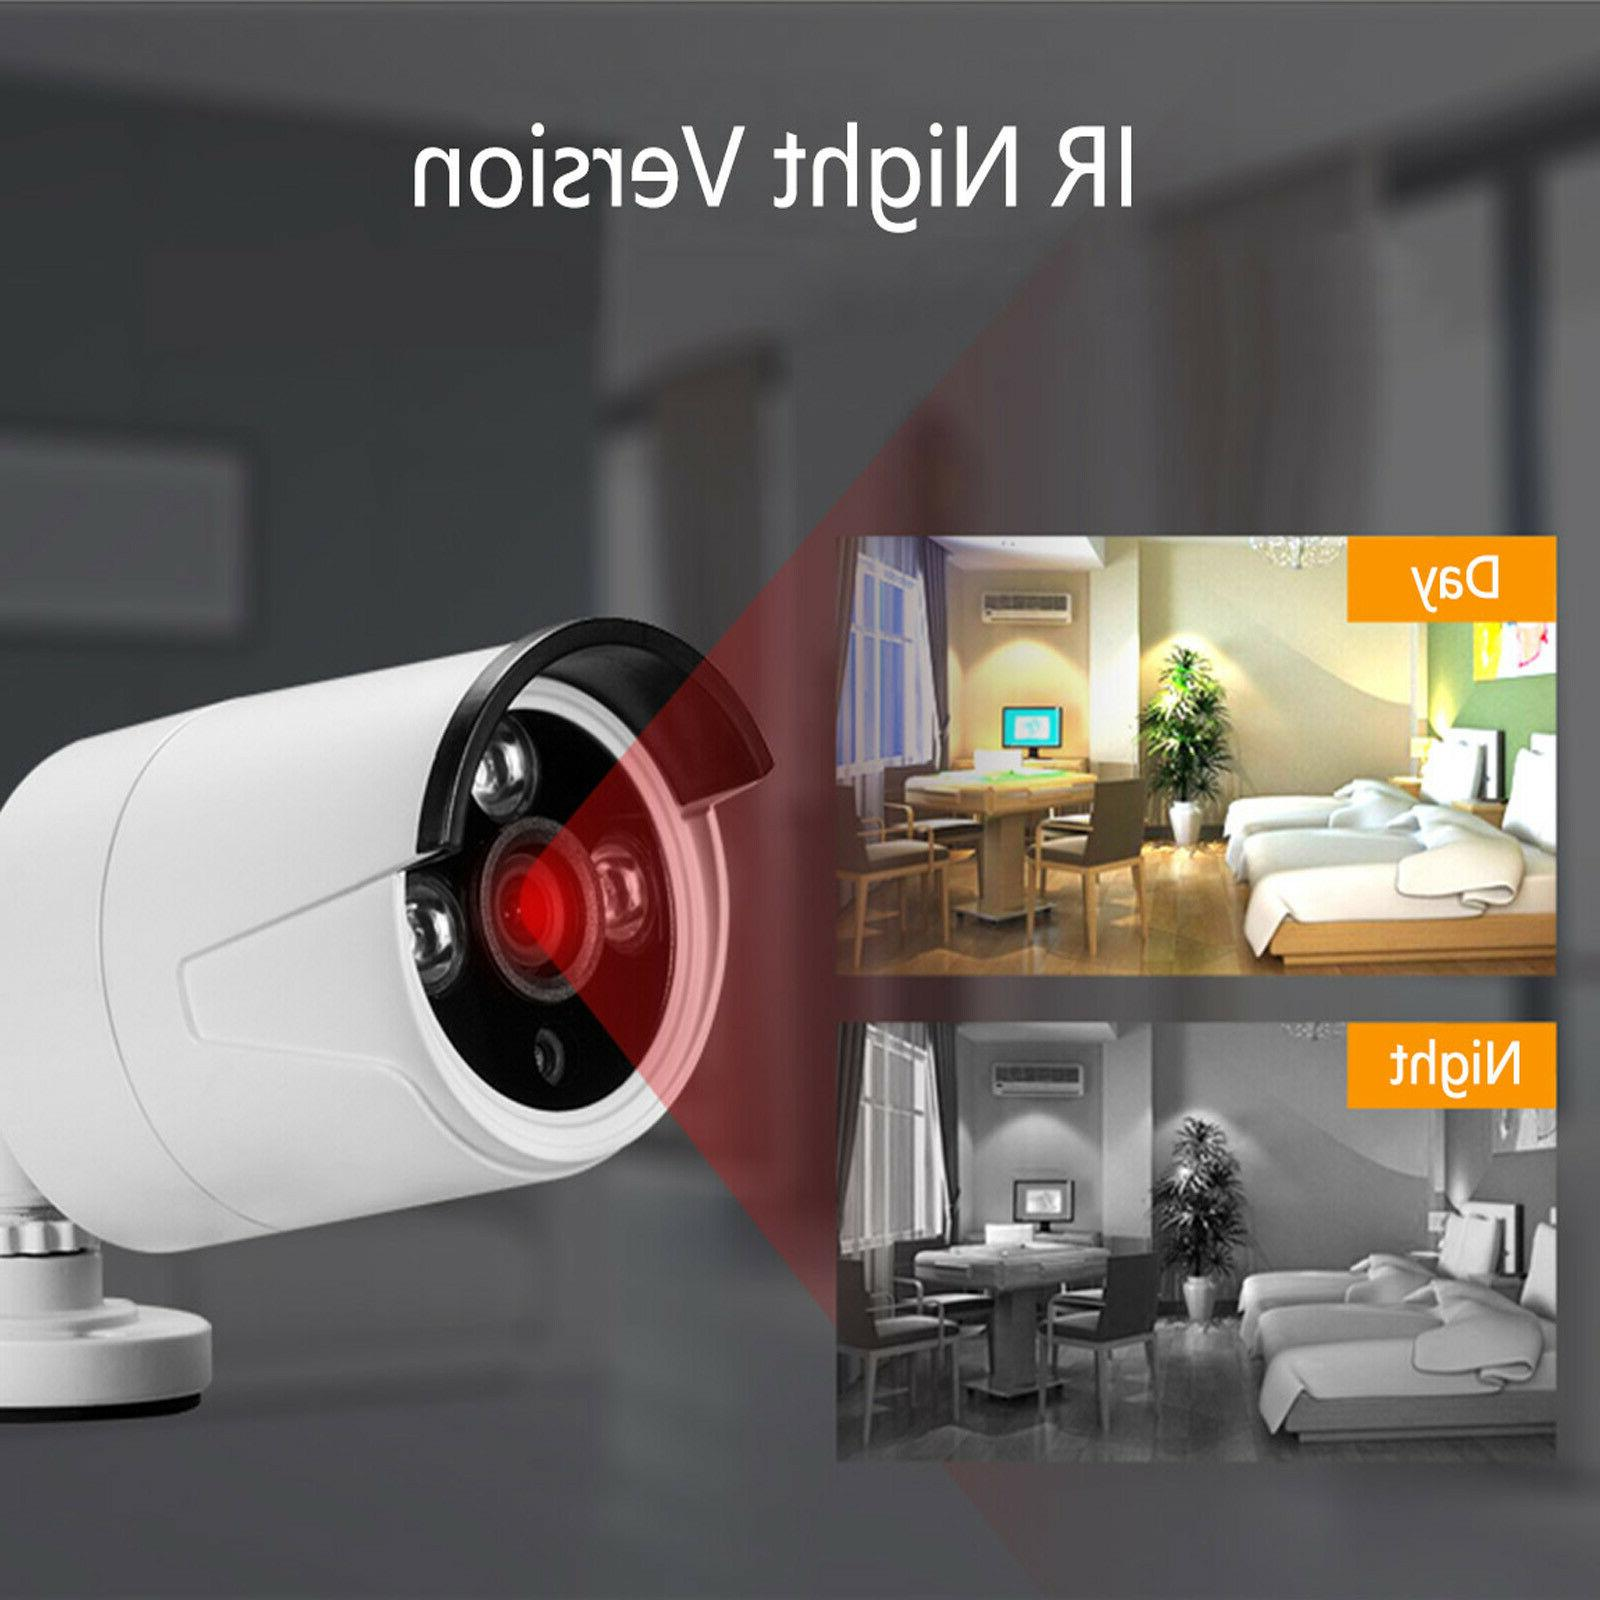 Anni NVR Outdoor WIFI Camera Video